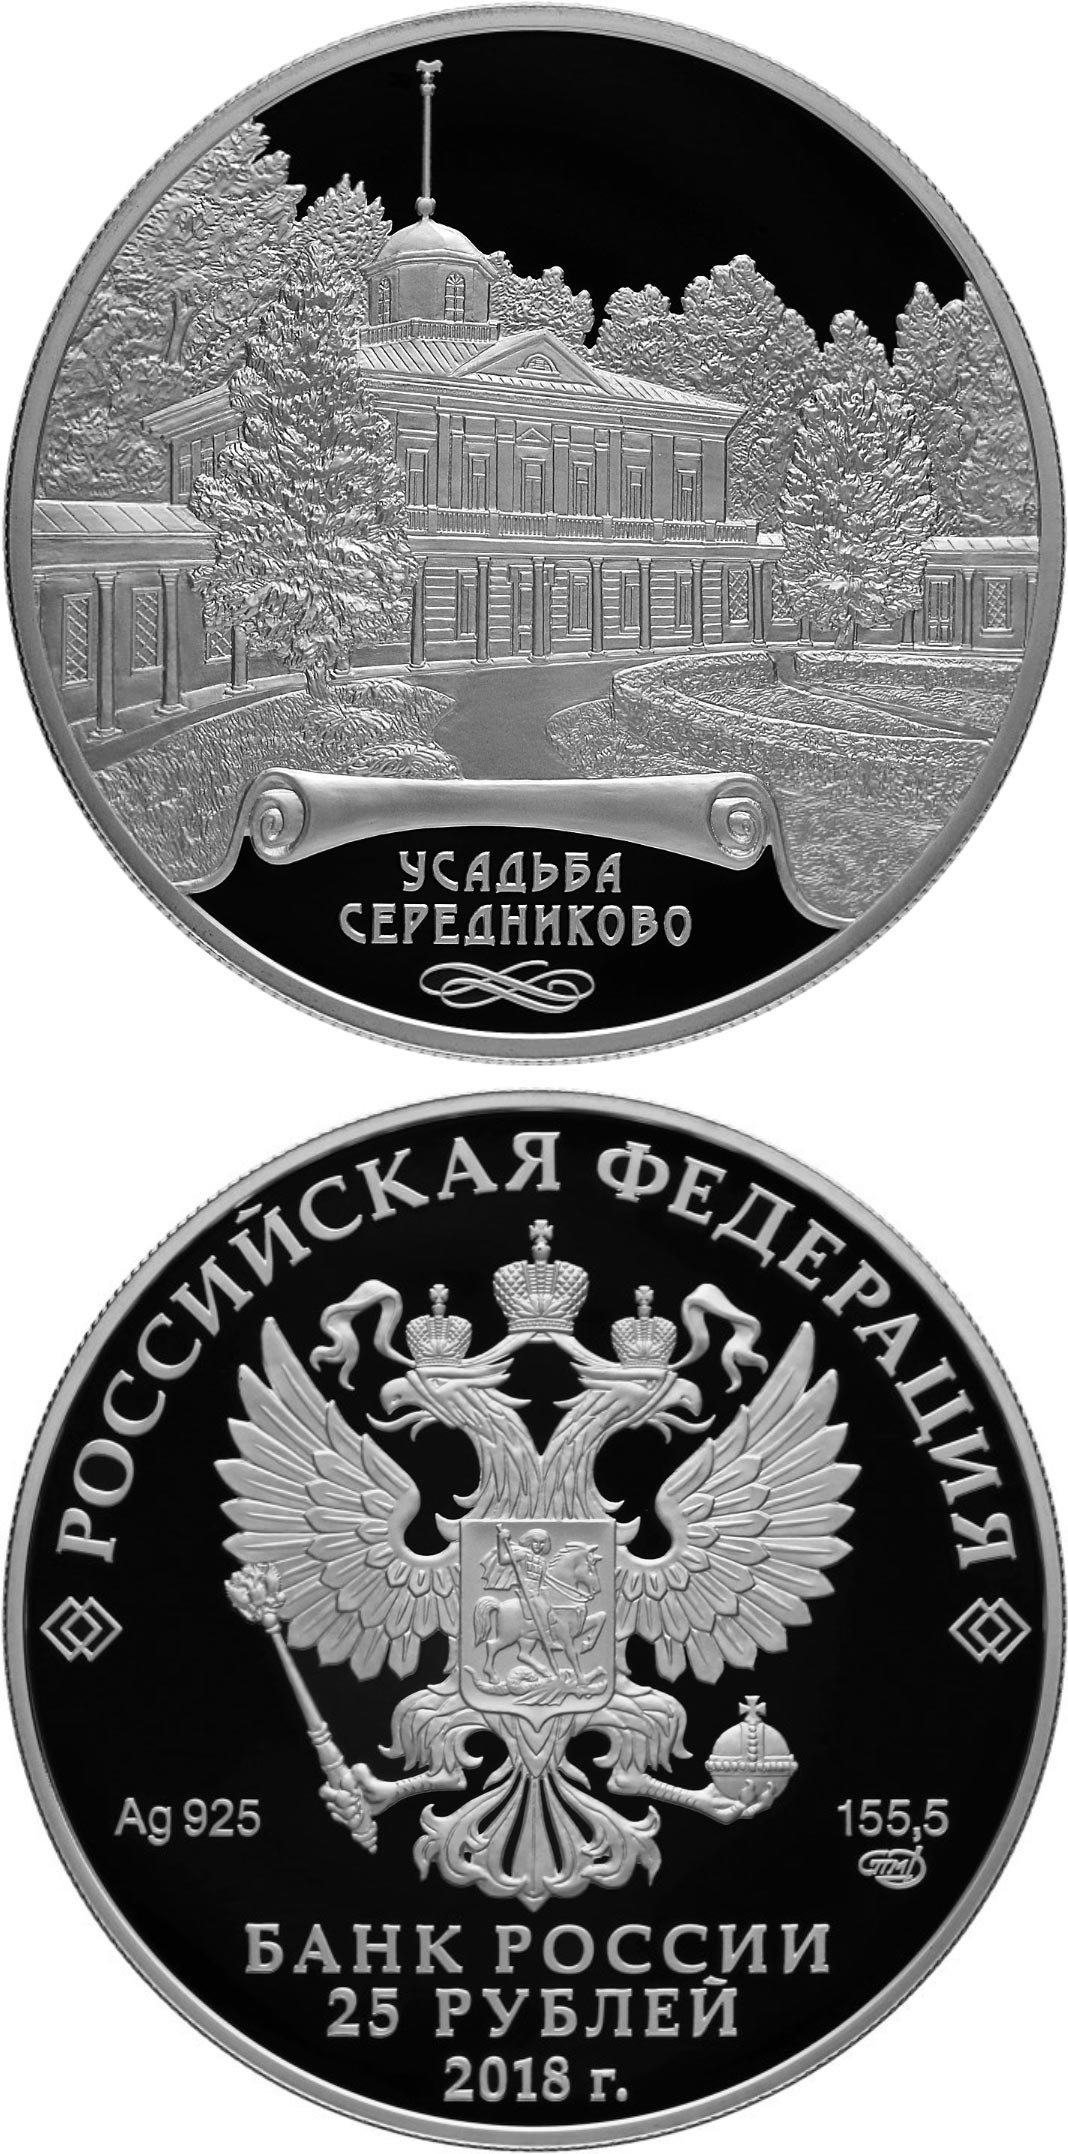 Image of 25 rubles coin – Estate Mcyri (Spasskoe) | Russia 2018.  The Silver coin is of Proof quality.